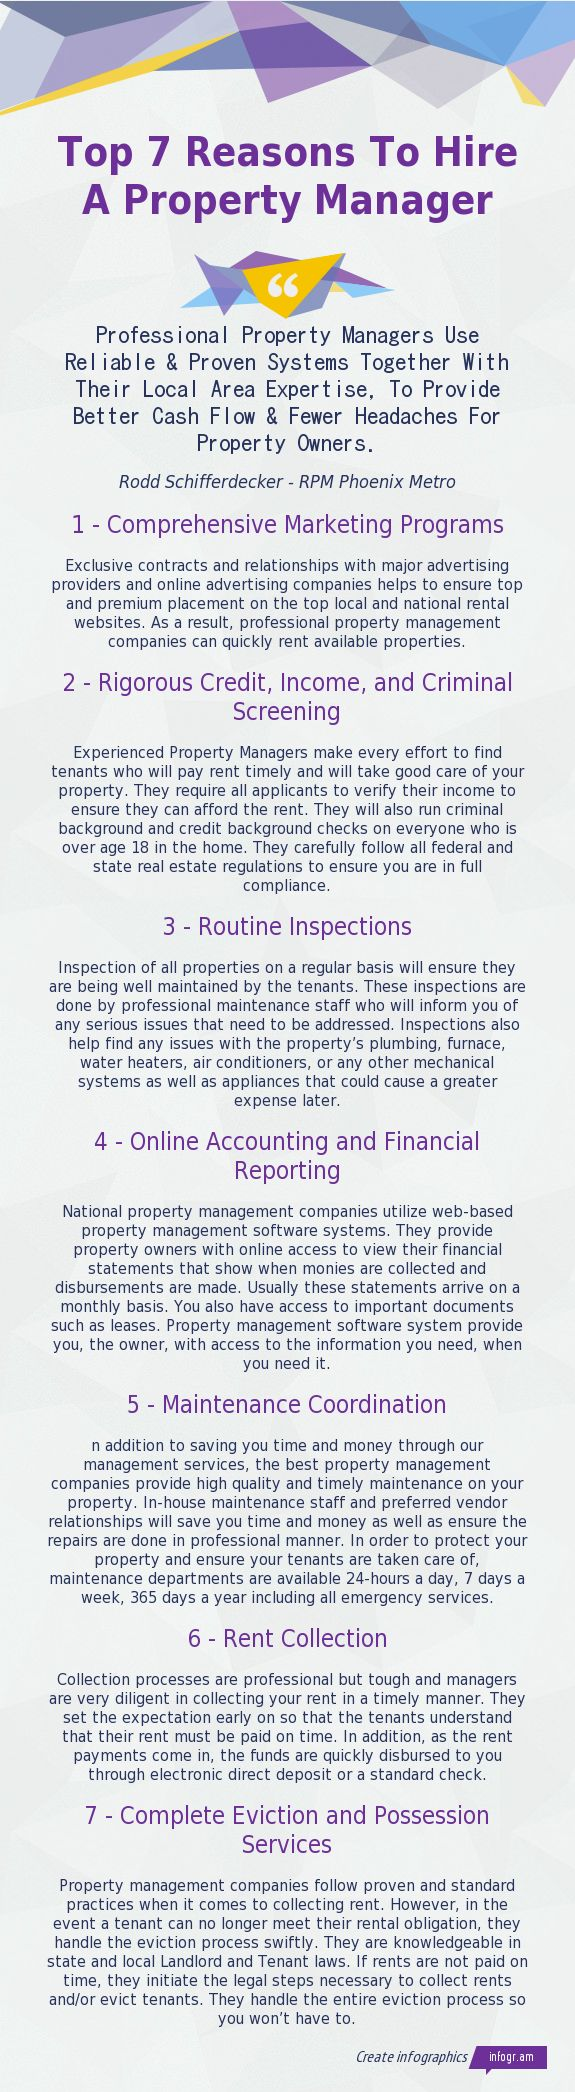 Top 7 Reasons To Hire A Property Management Company - http://www.rpmphoenixmetro.com - Experienced Property Management Professionals